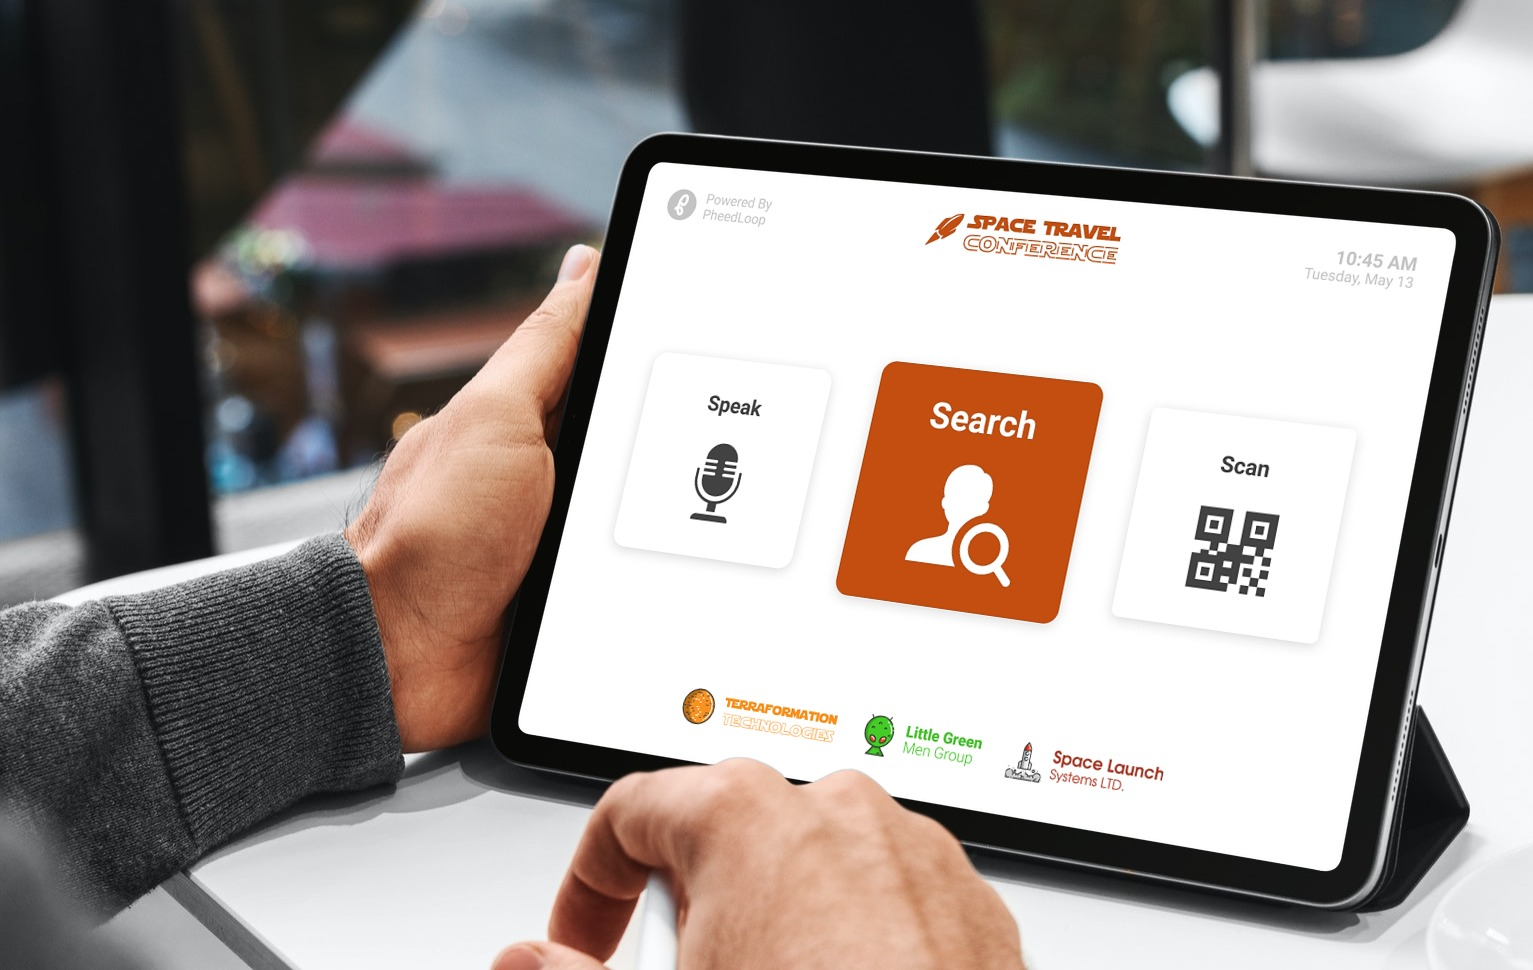 PheedLoop Check-In System In-Person Events